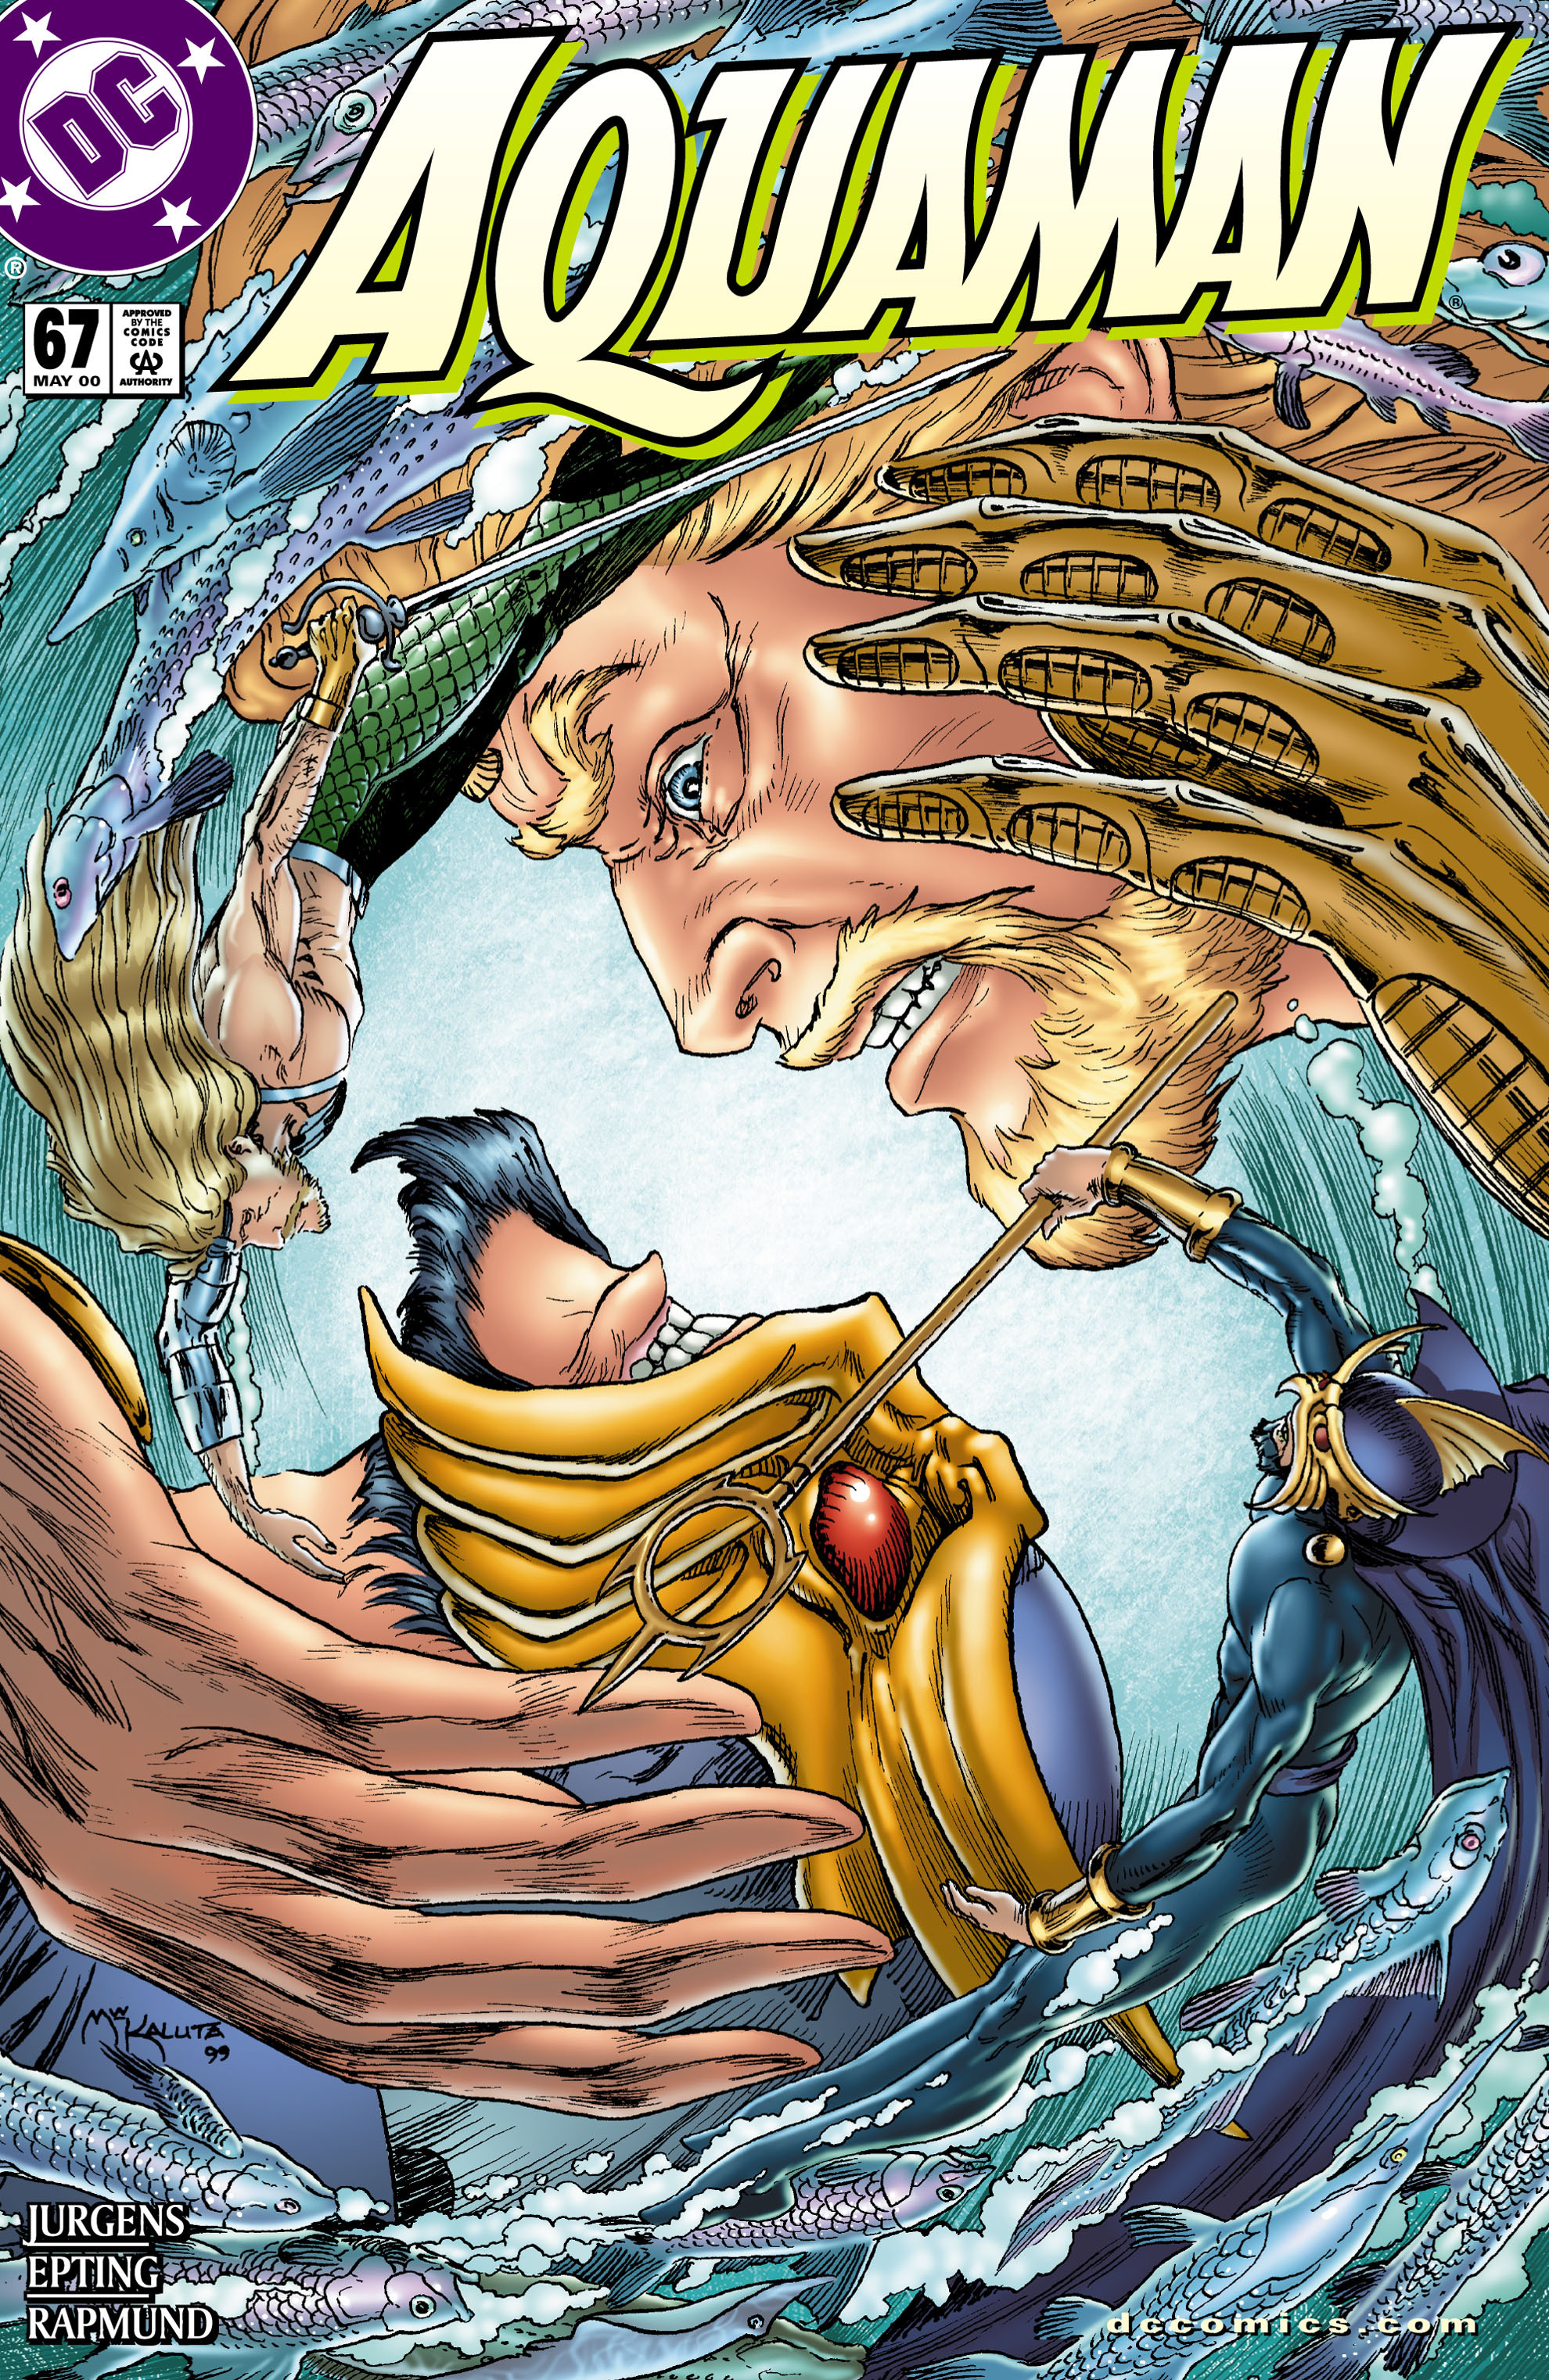 Read online Aquaman (1994) comic -  Issue #67 - 1